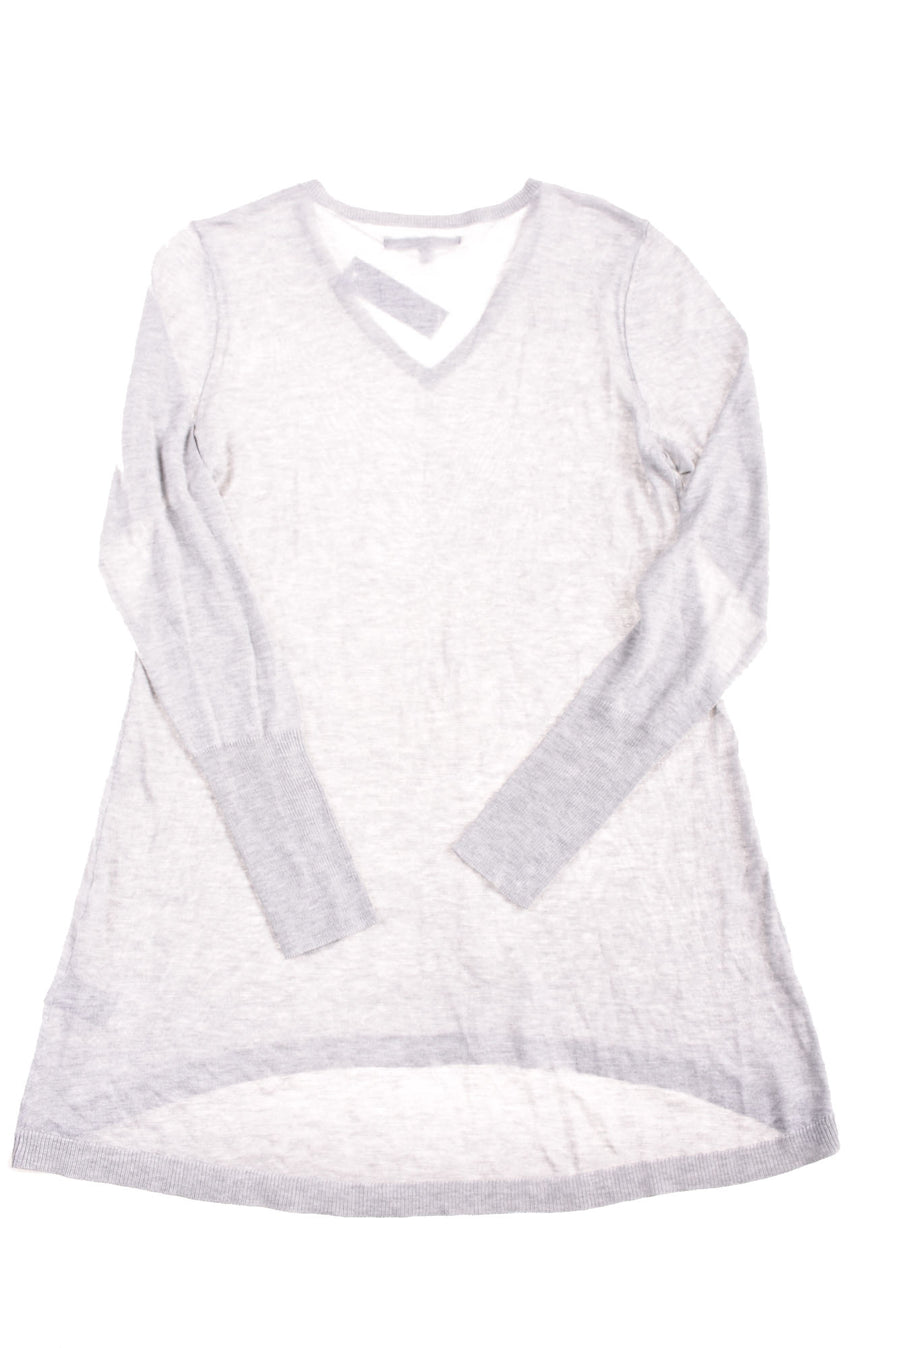 NEW Apt. 9 Women's Top Medium Gray